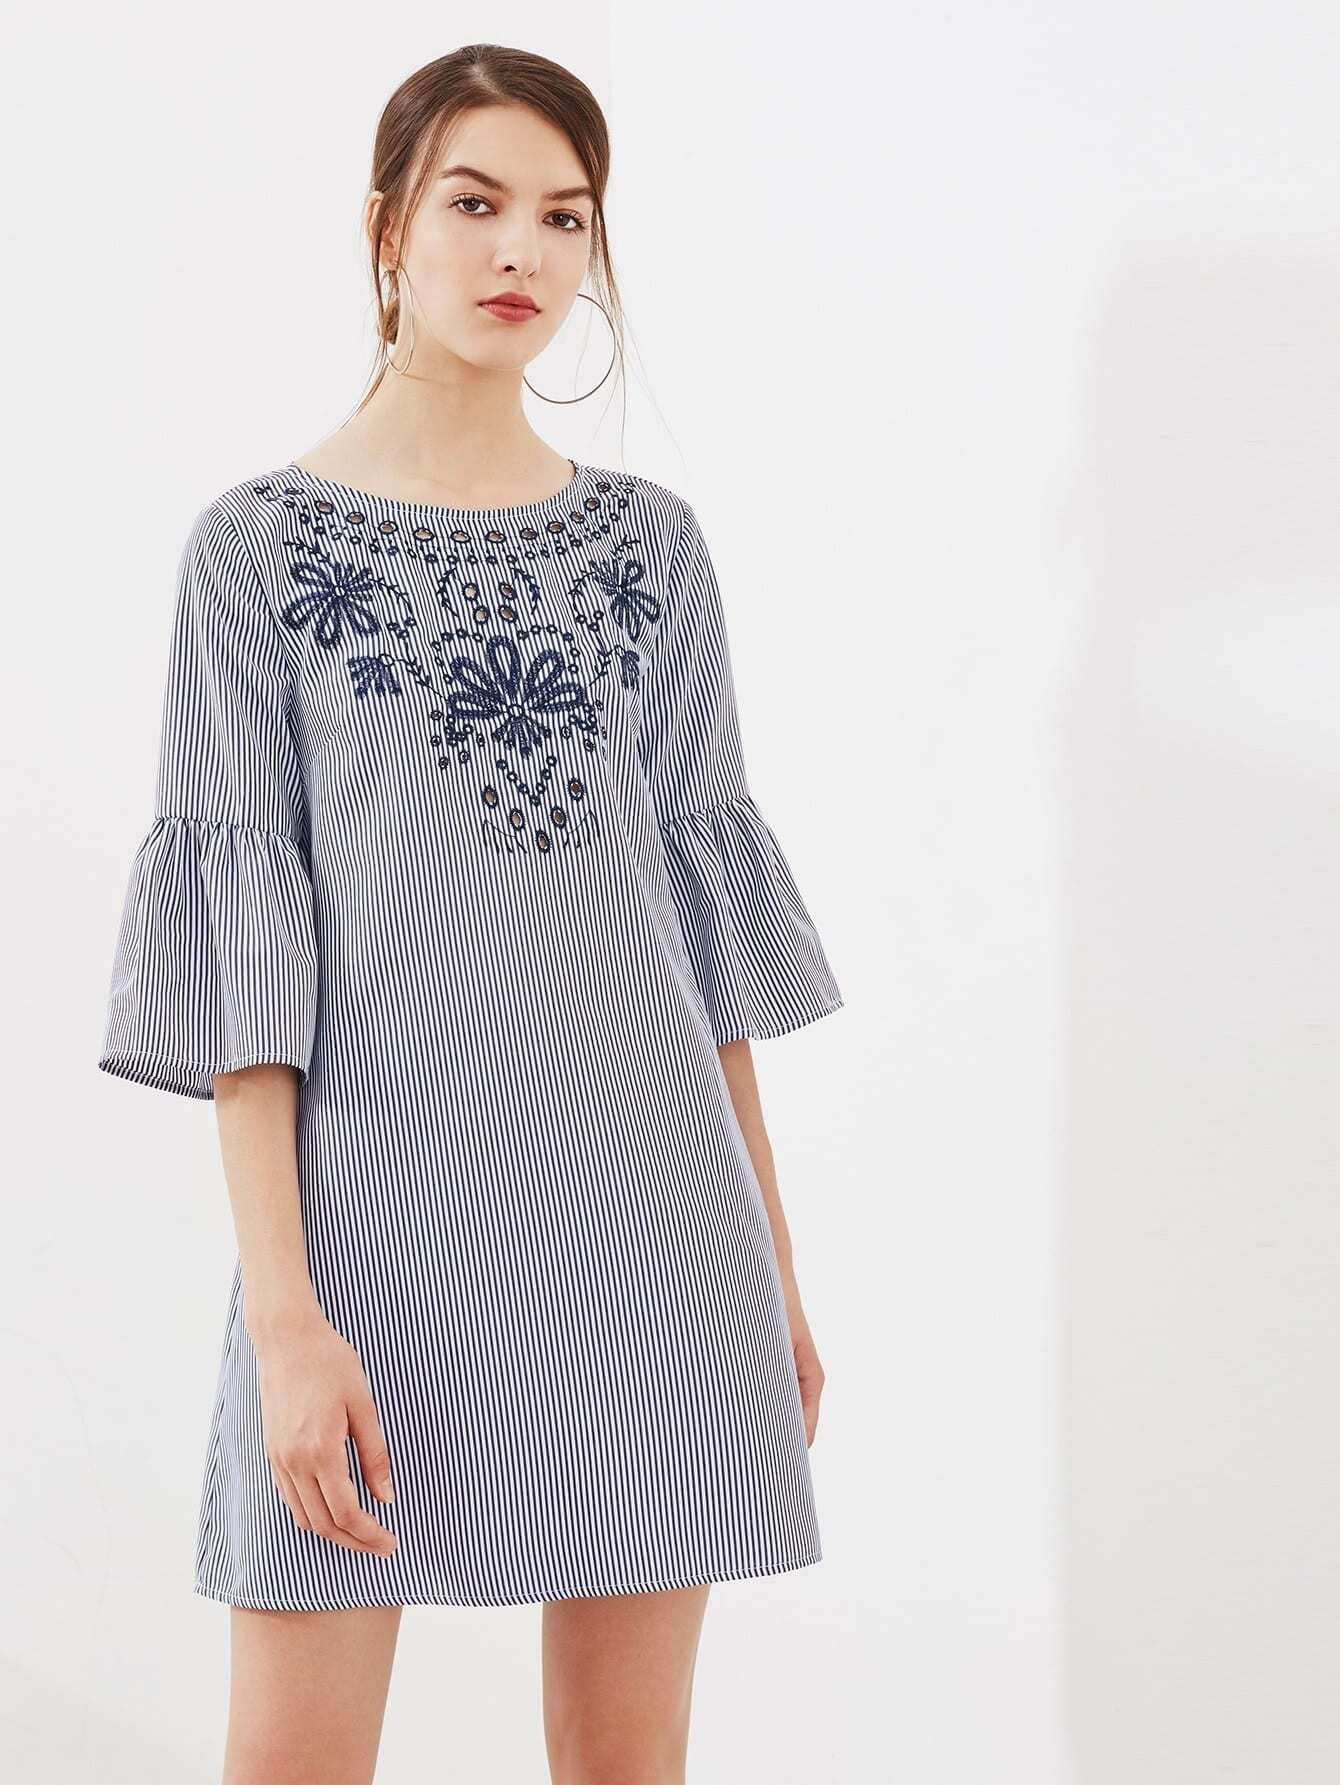 Eyelet Embroidered Trumpet Sleeve Tie Back Dress eyelet embroidered self belted dress